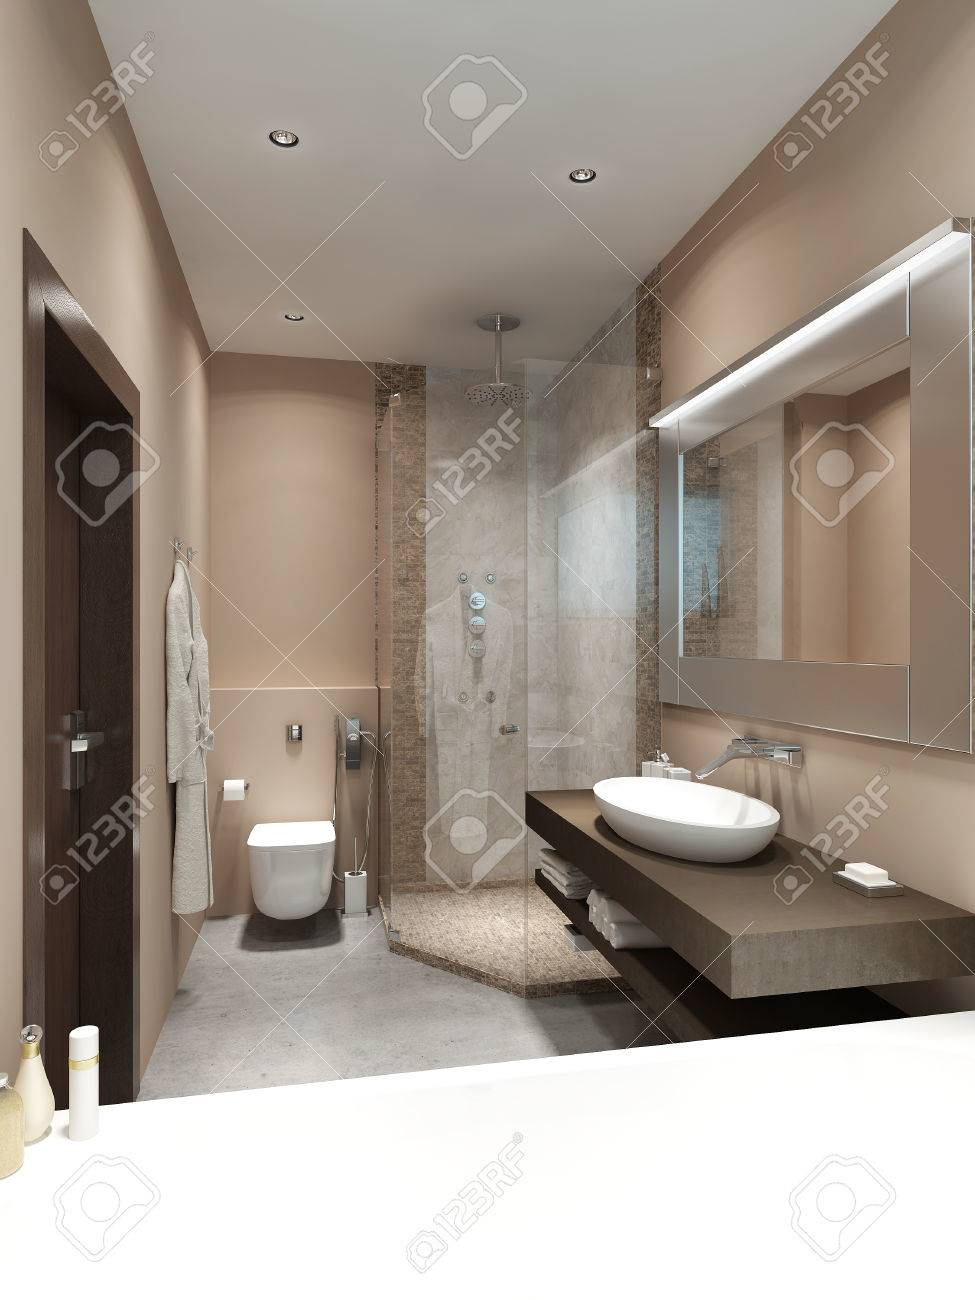 Design In Contemporary Style Bathrooms With Shower And Mosaic